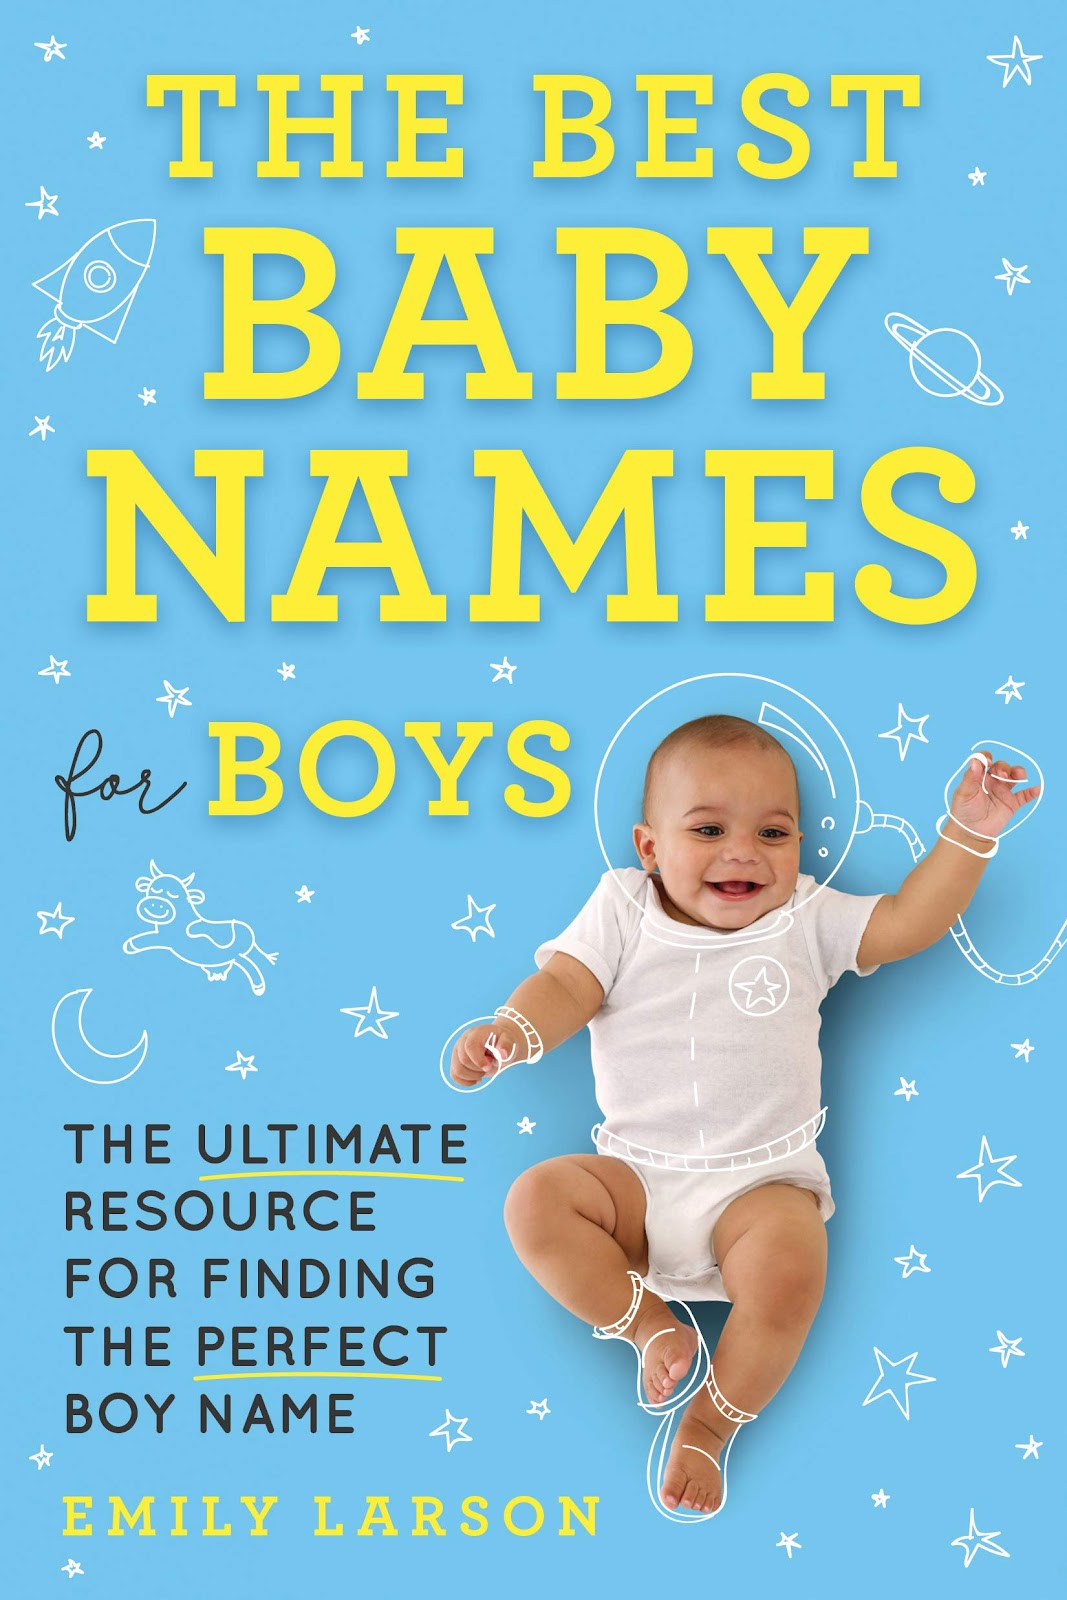 Best Baby Name Books - The Best Baby Names for Boys